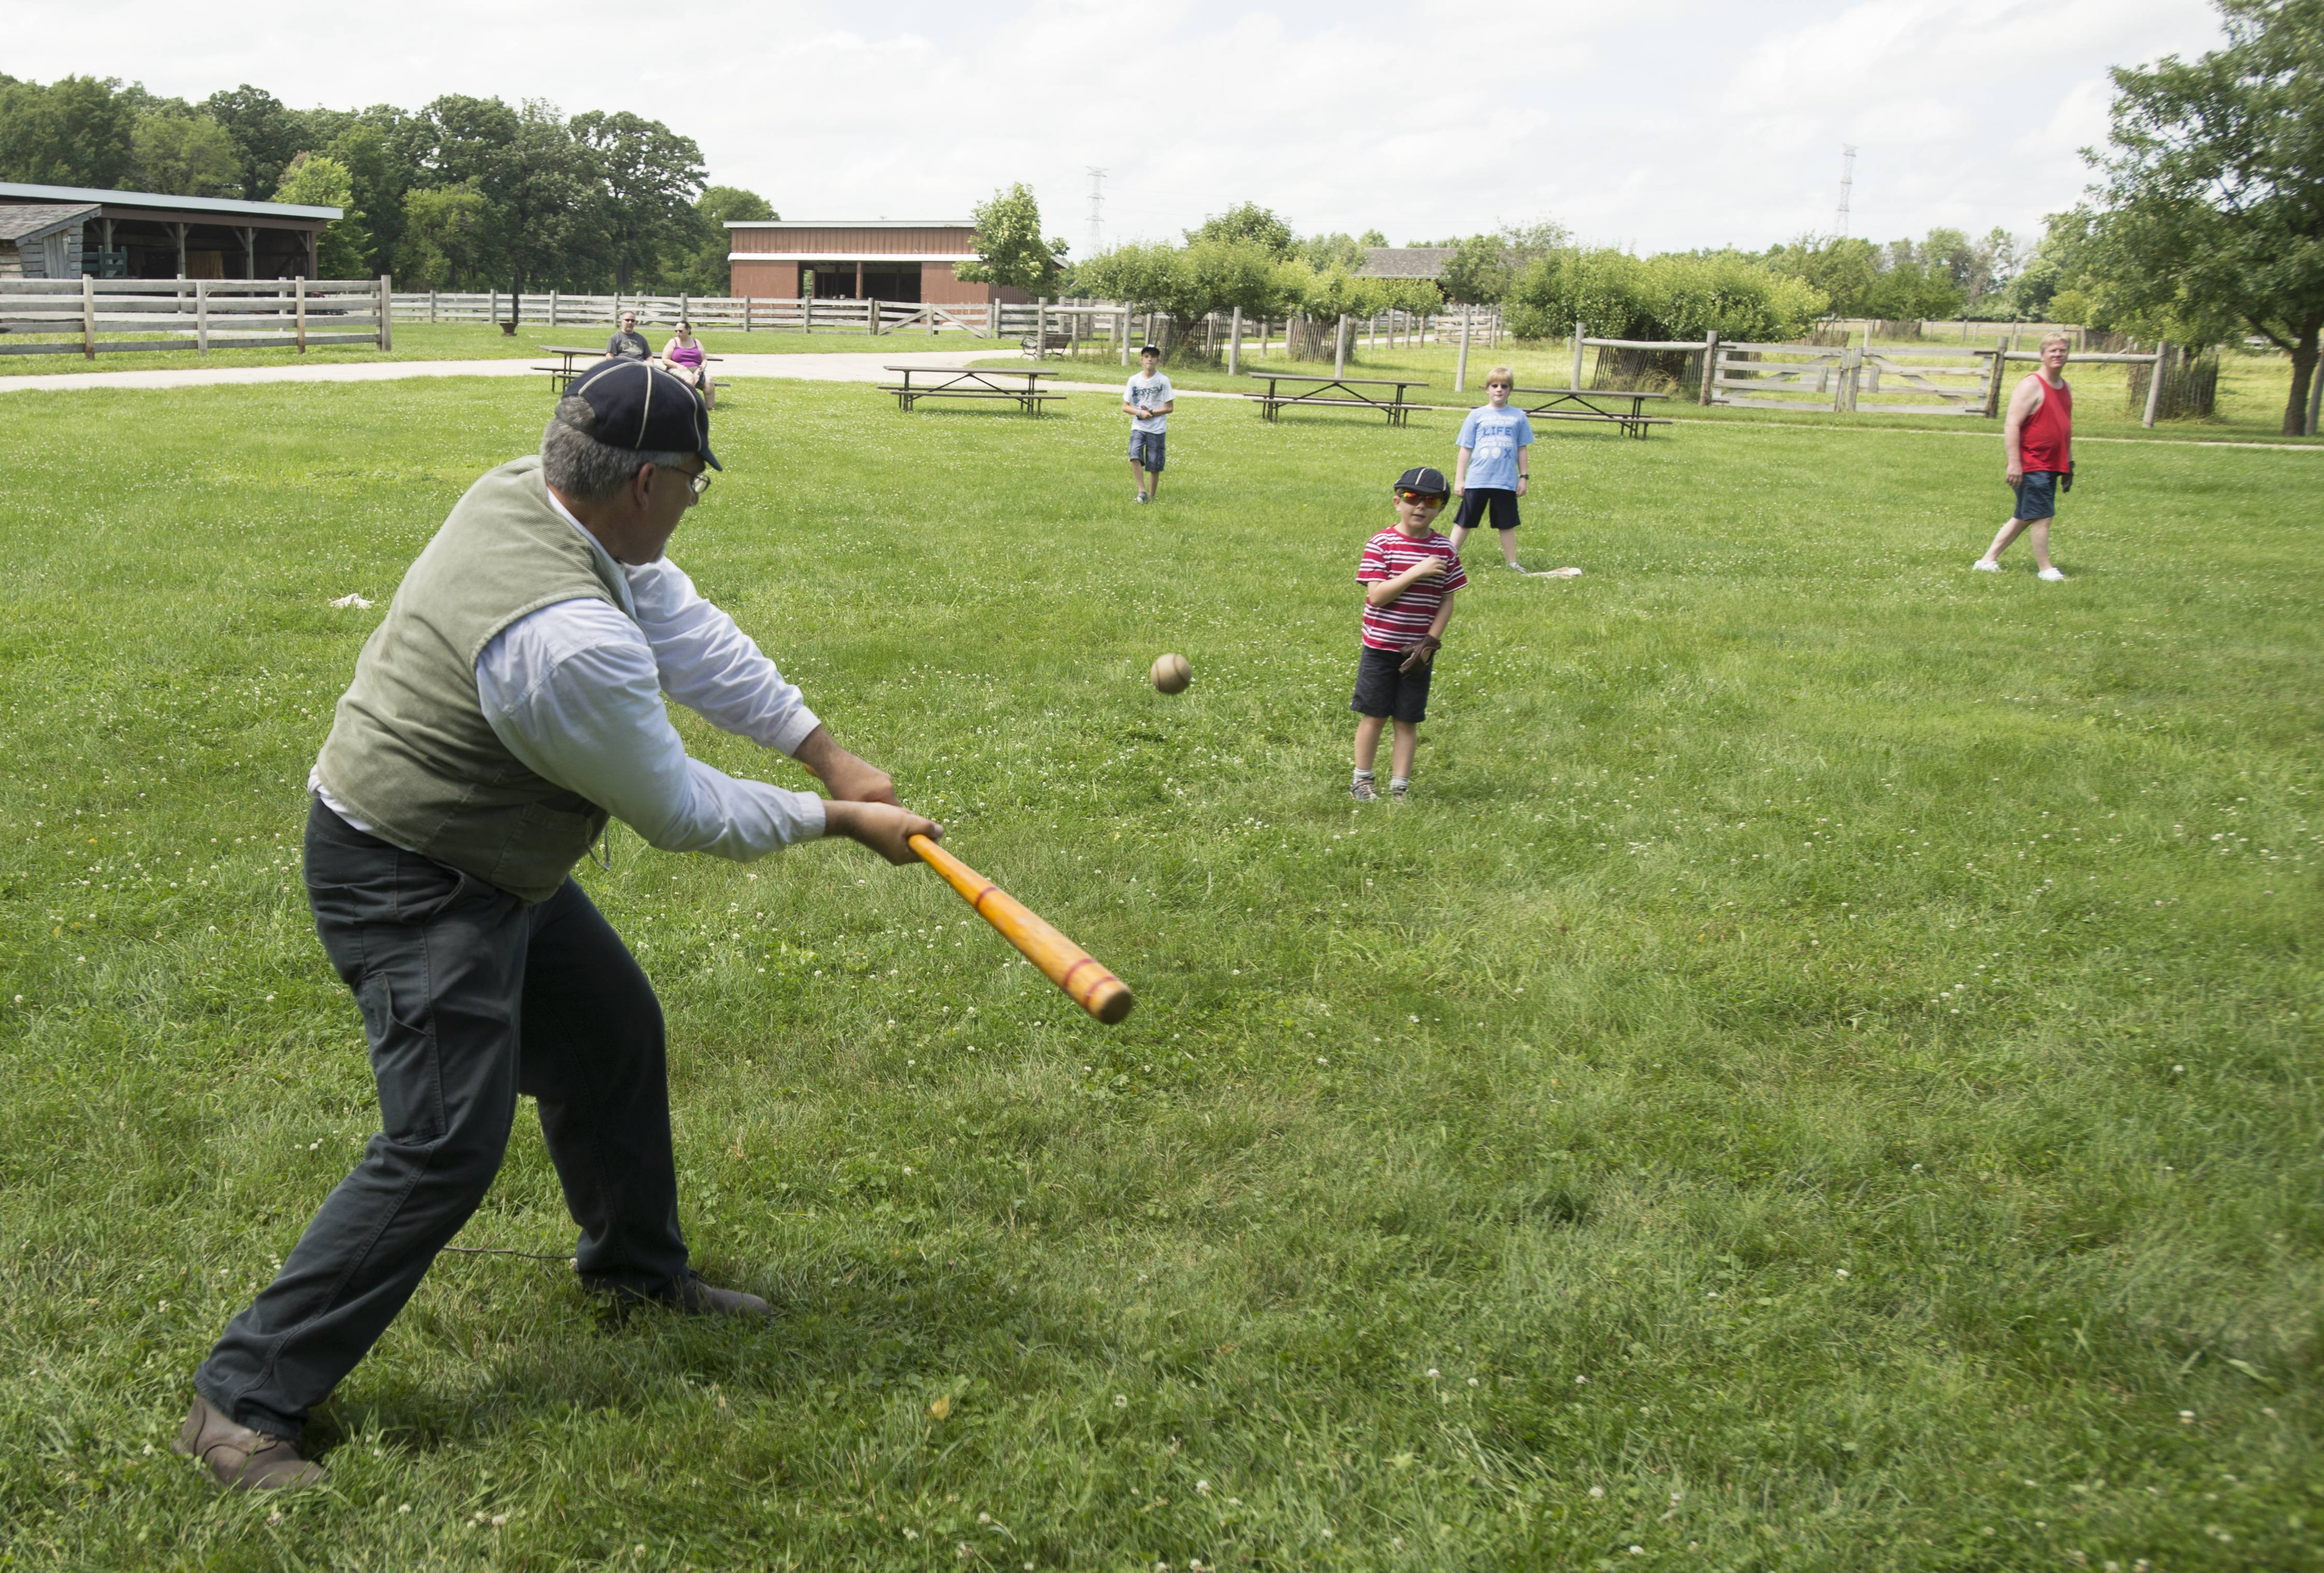 Children play old-fashioned baseball Sunday during Kline Creek Farm's 4th of July celebration.